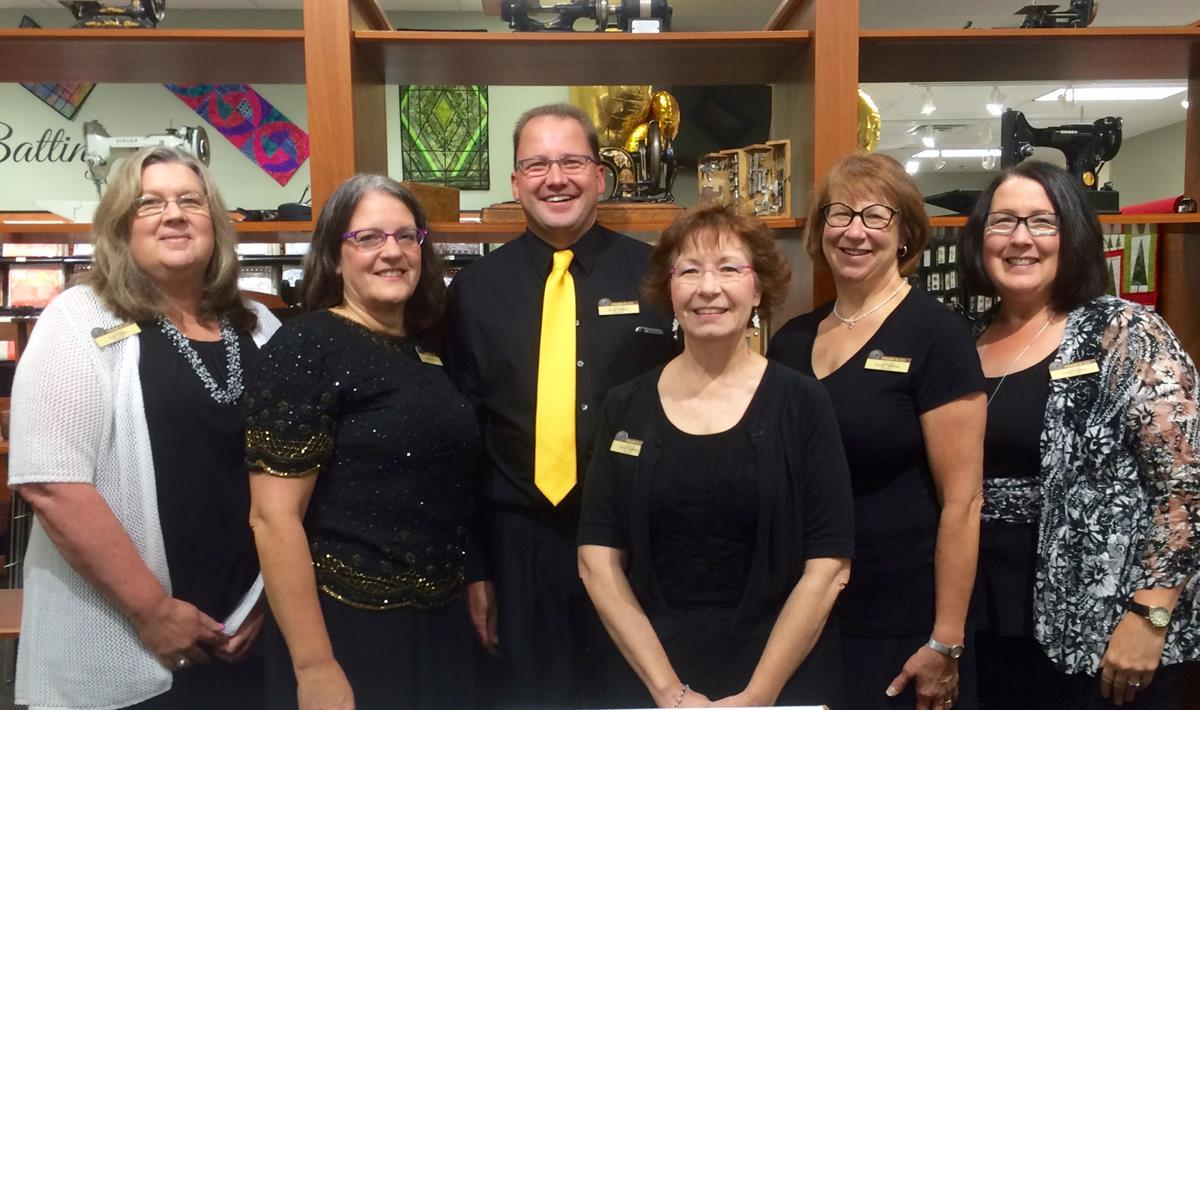 Staff at Frank's Sewing Center Waukesha WI